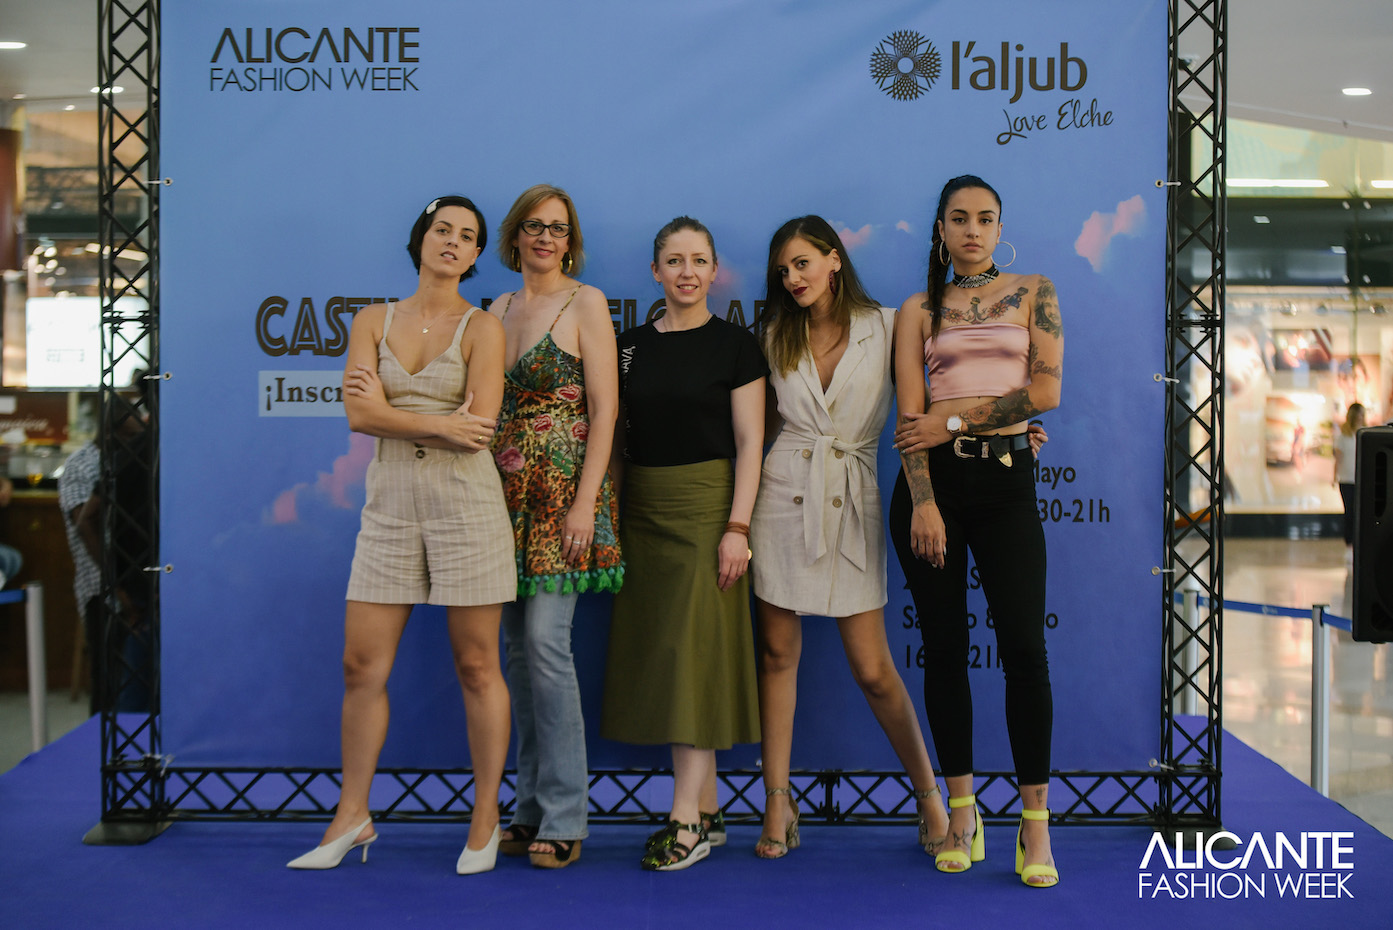 alicante fashion week 2019